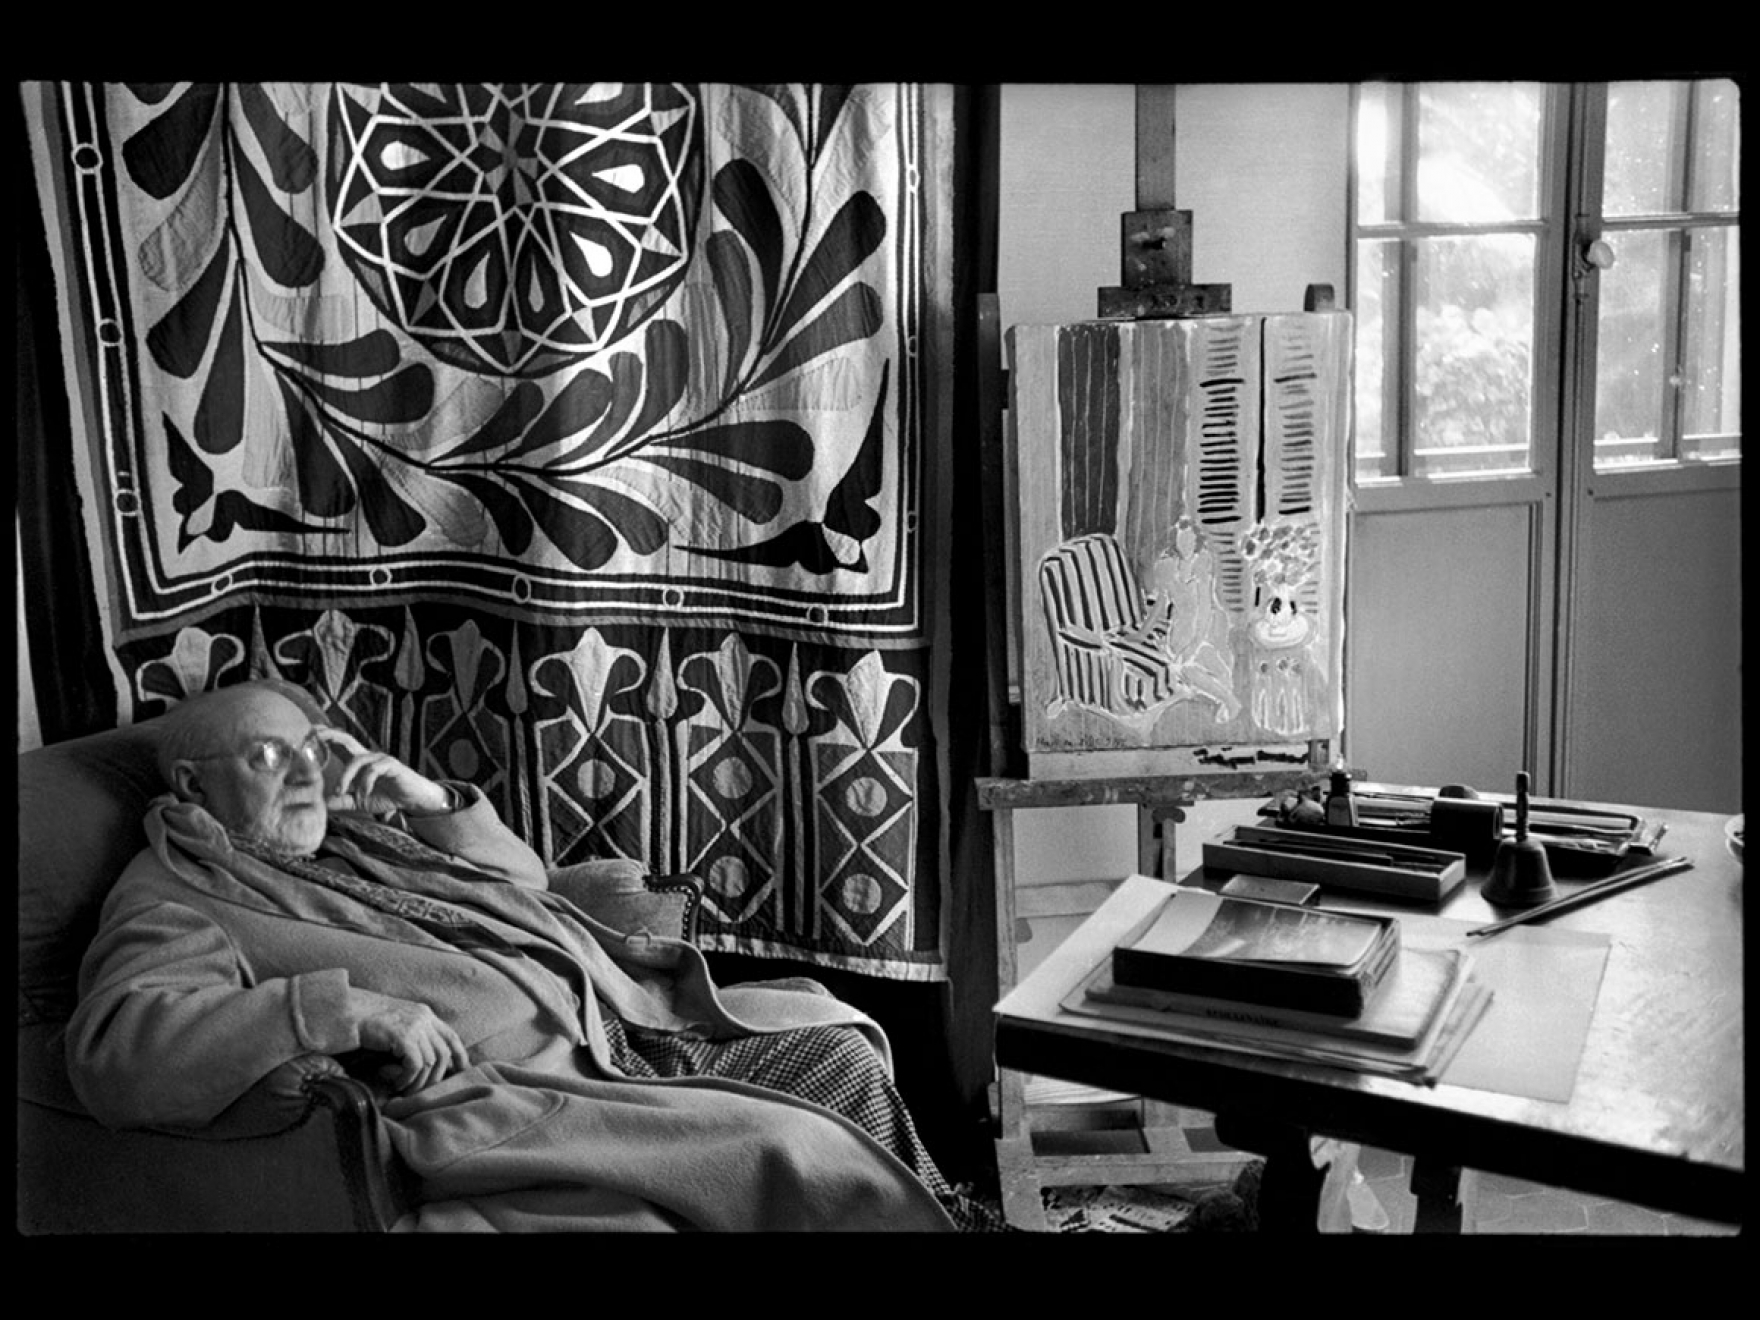 Henri Cartier-Bresson's photograph, Matisse at home in front of his Egyptian curtain, Villa Le Reve, Vence, 1944